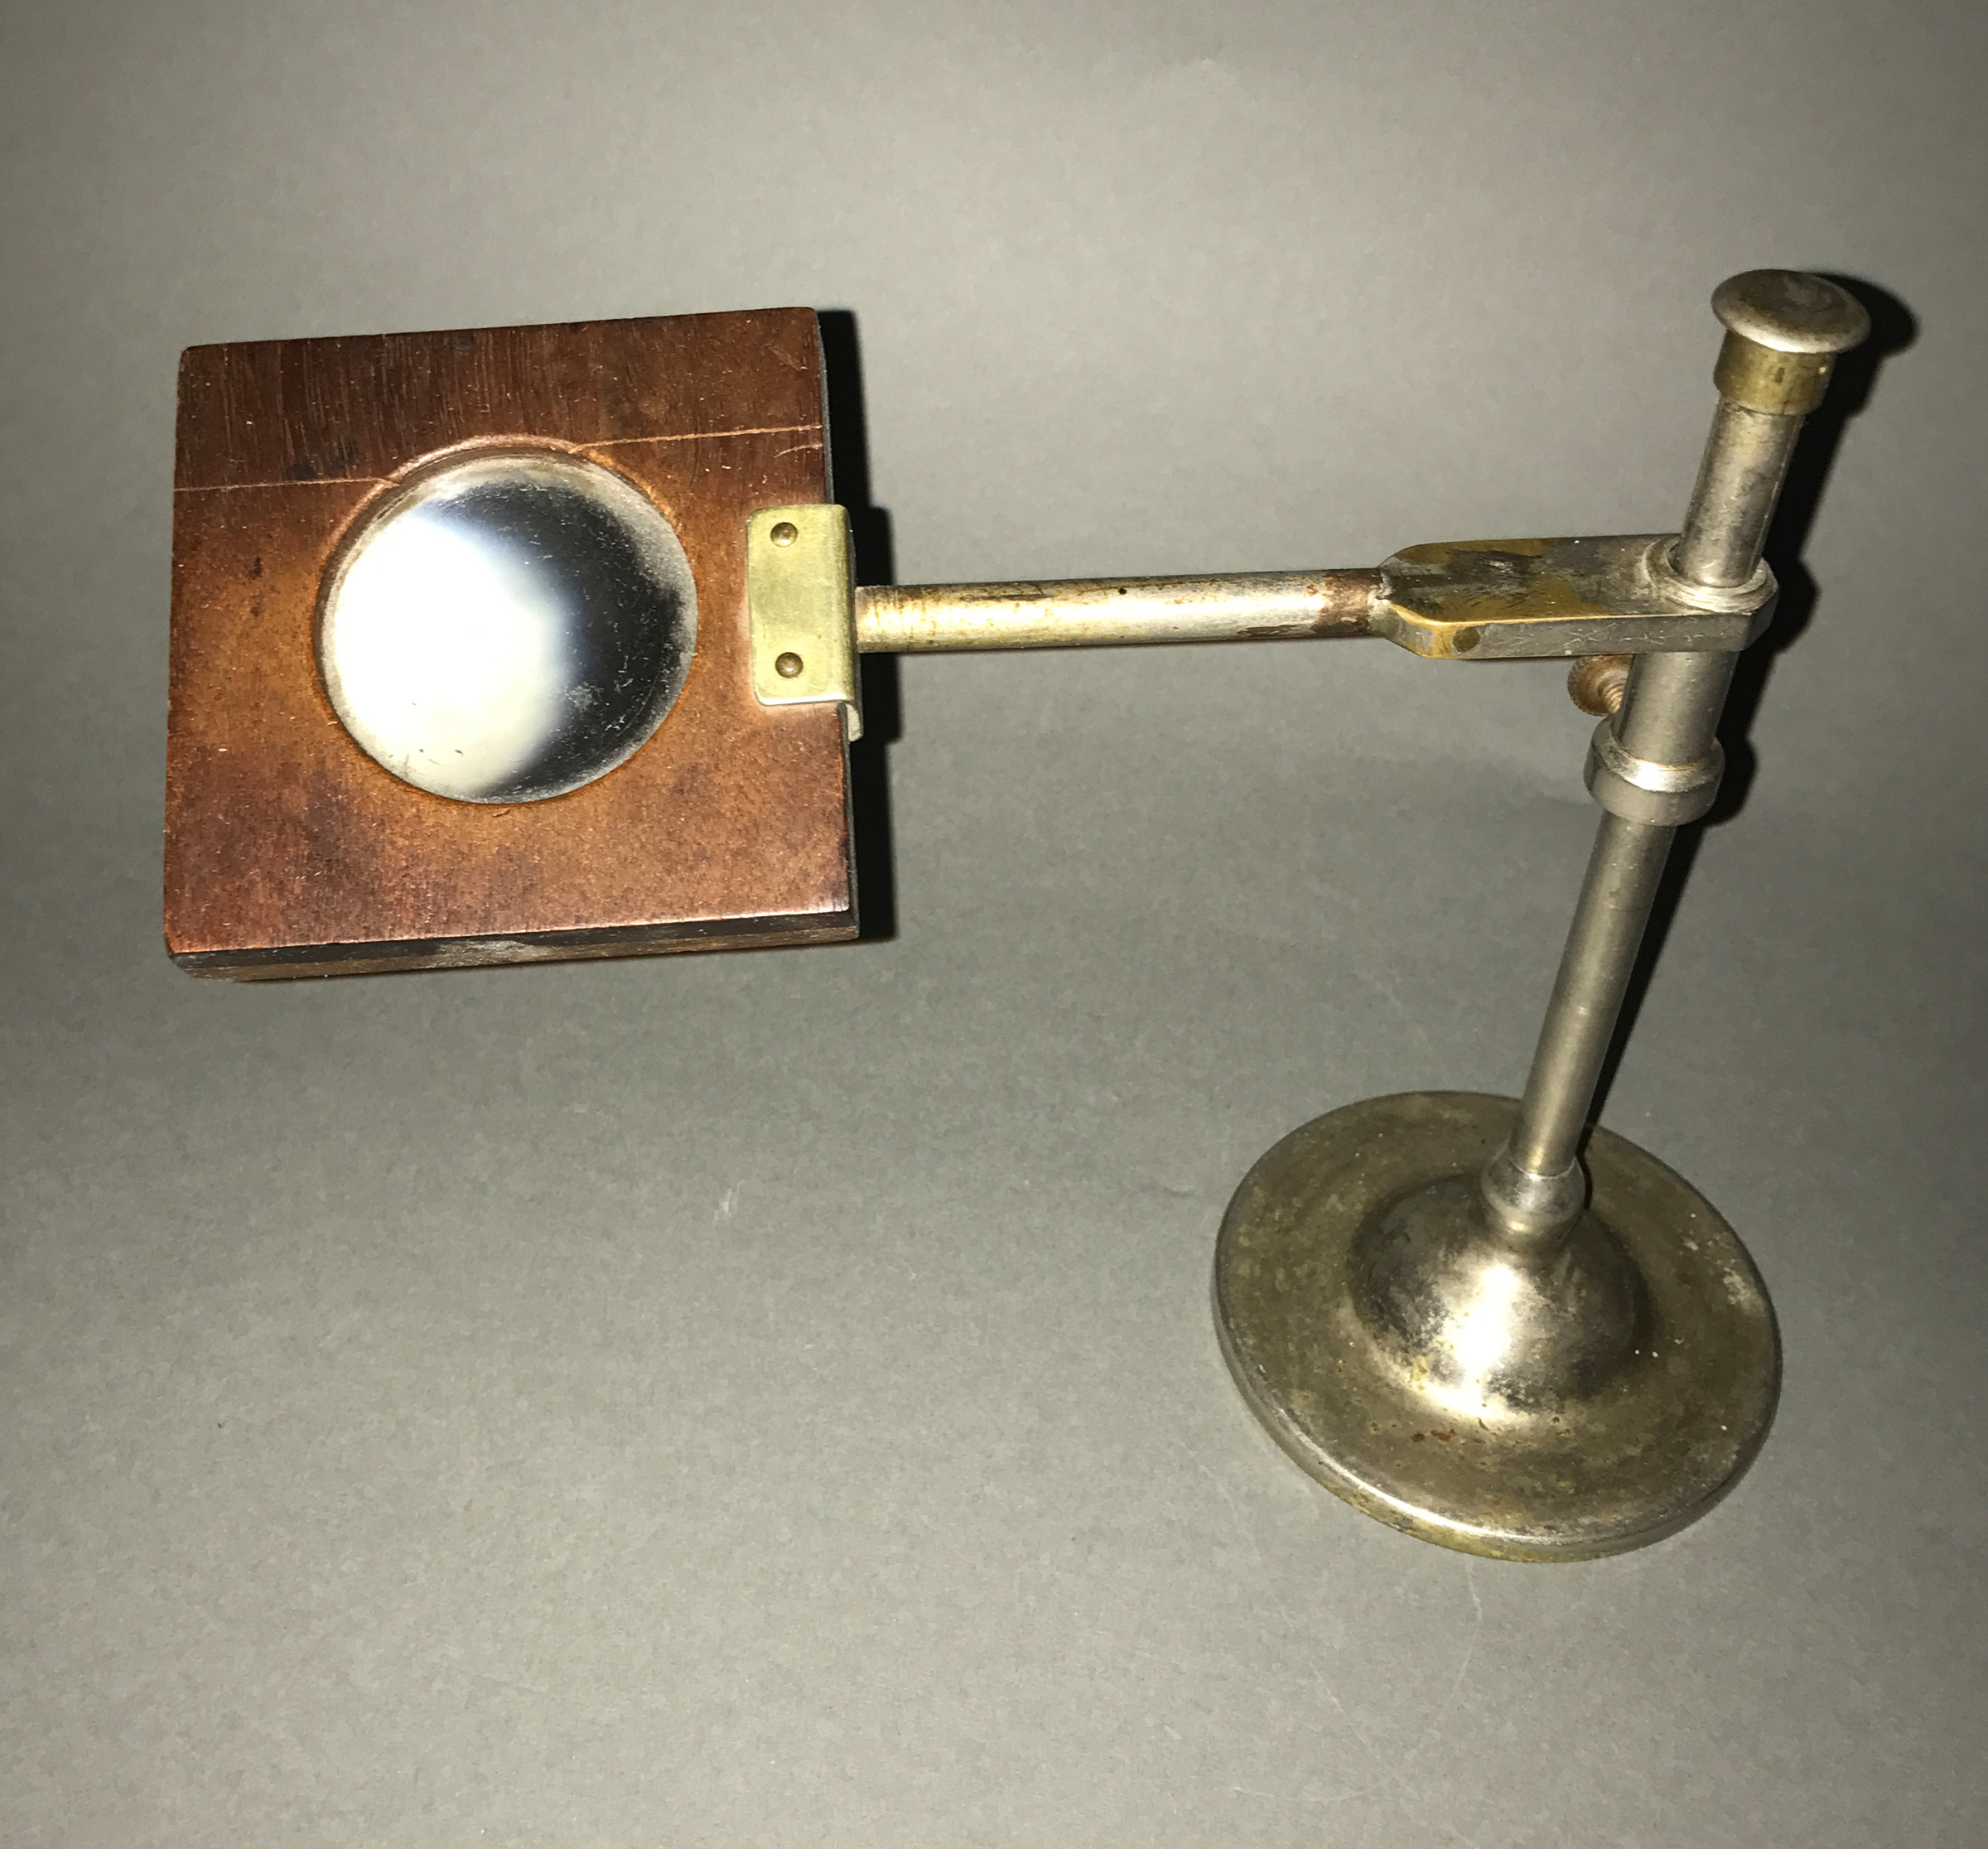 Science Optical Instrument Magnifying Glass Magnifier